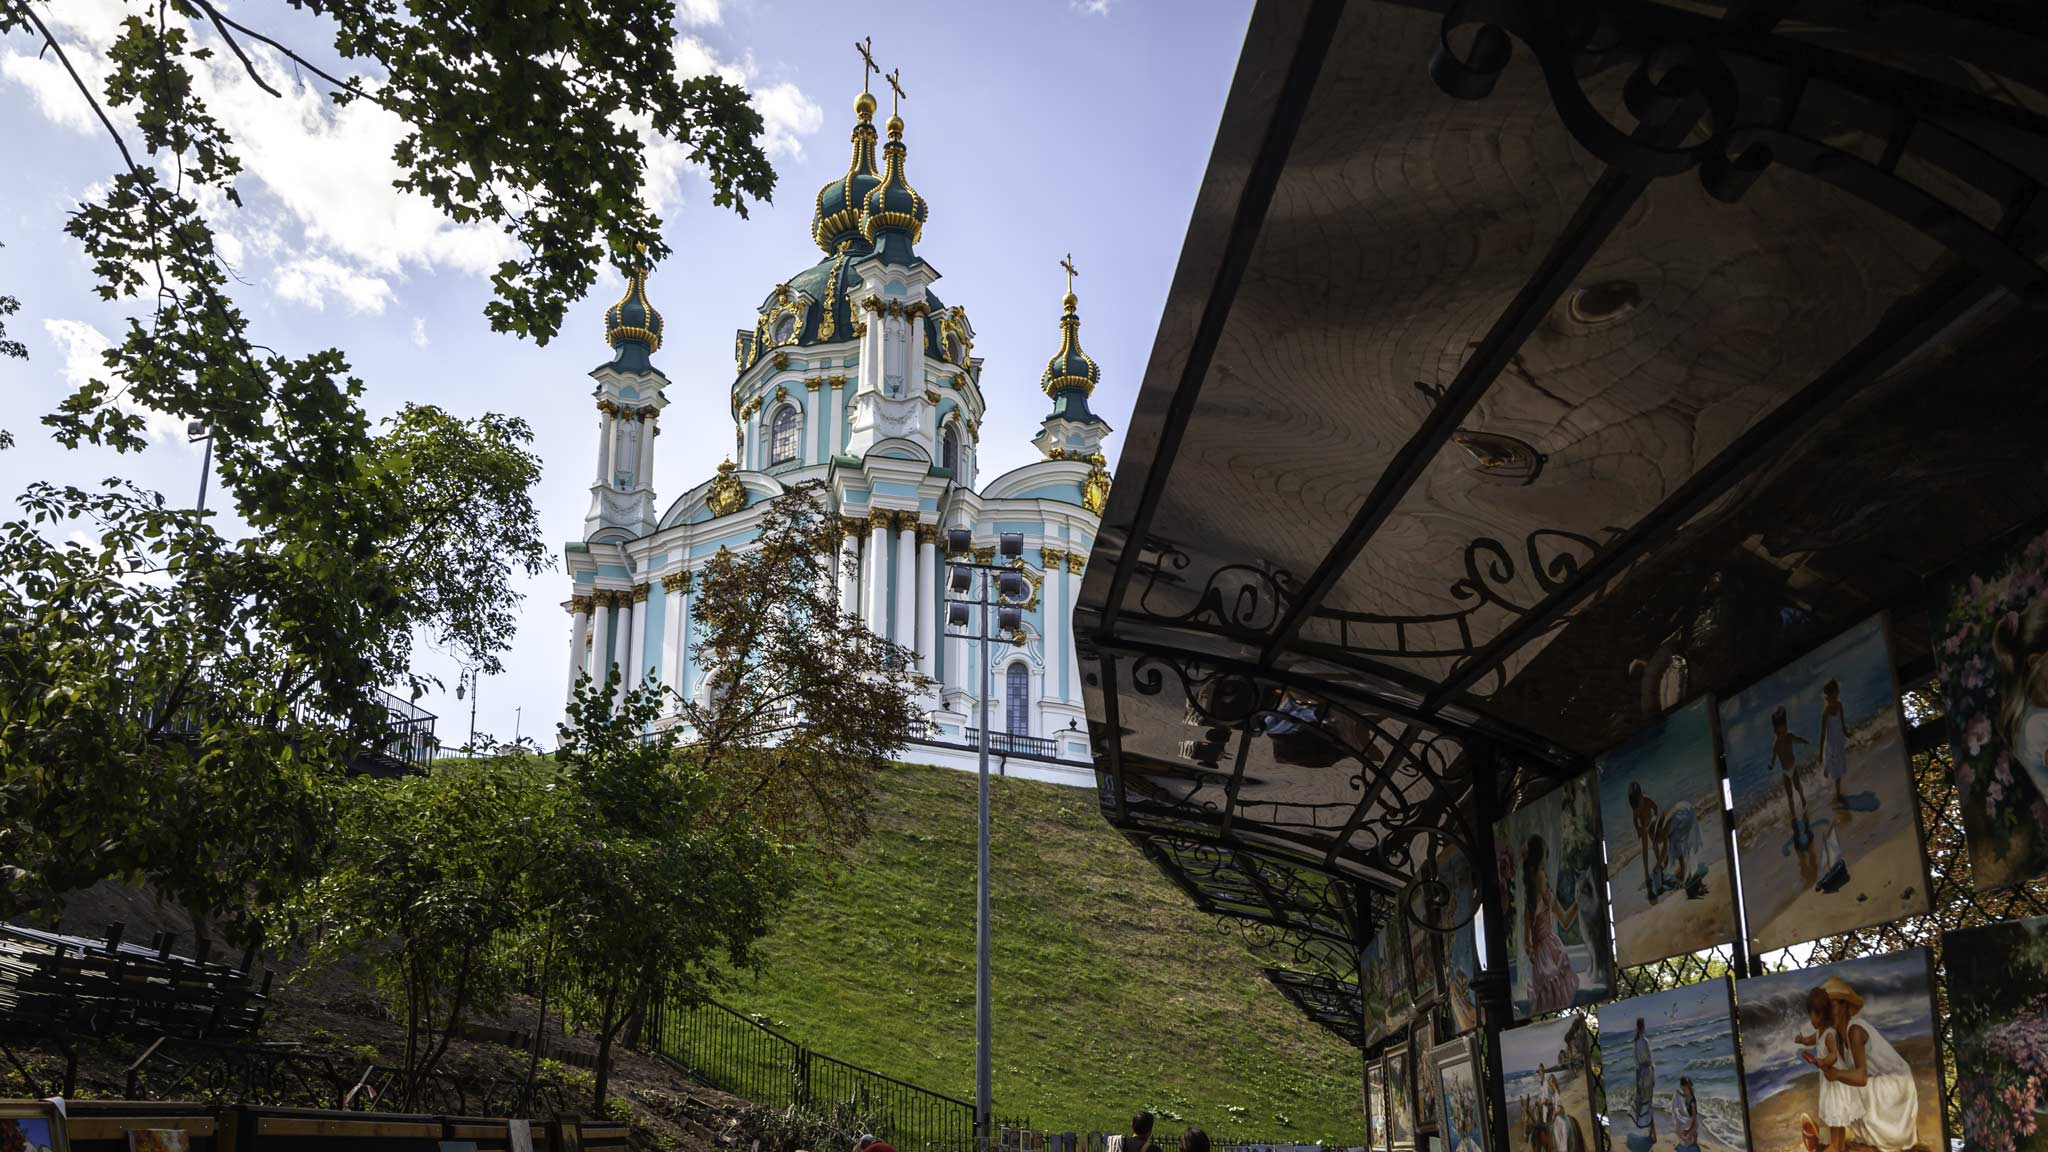 A cathedral in Kyiv Ukraine framed by an art stool on the bottom right